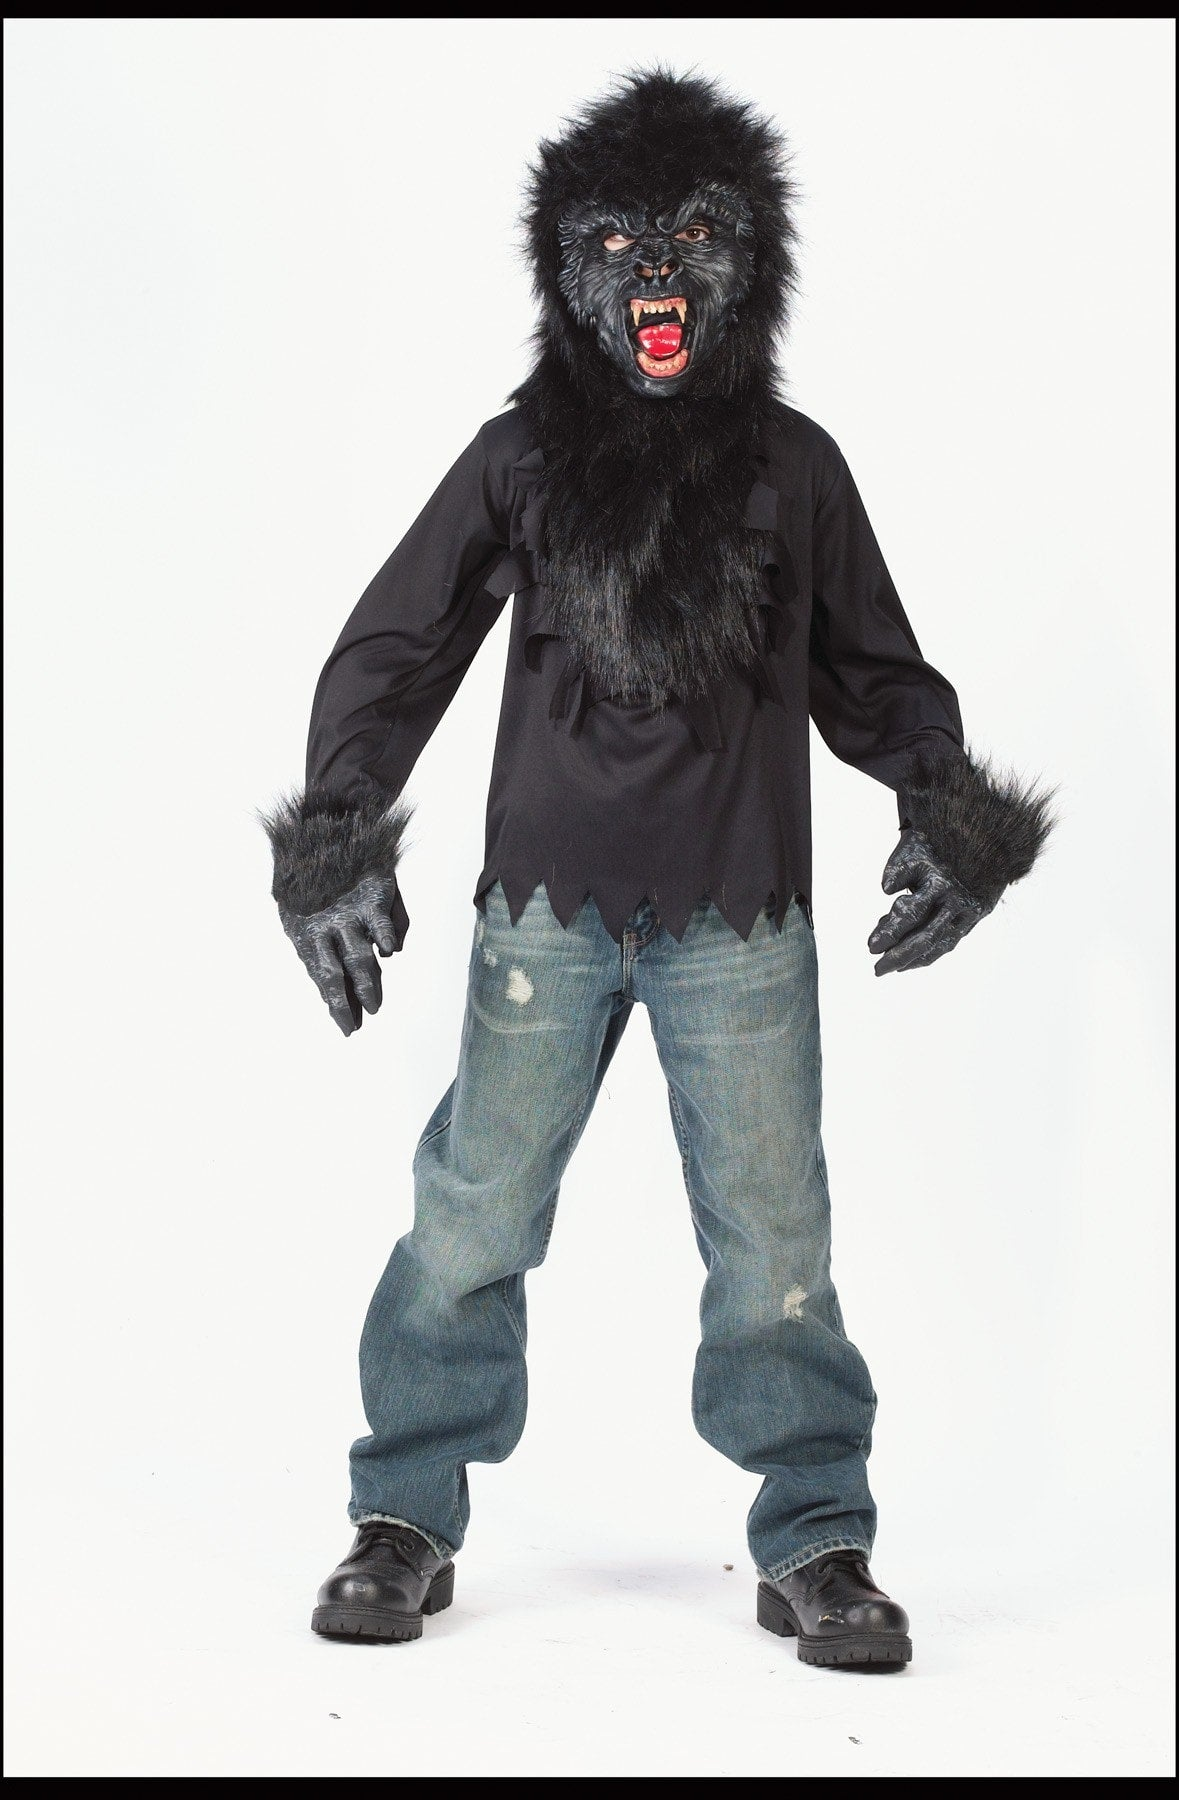 Morris Gorilla Mask Gloves Shirt7to10 - MaxWigs